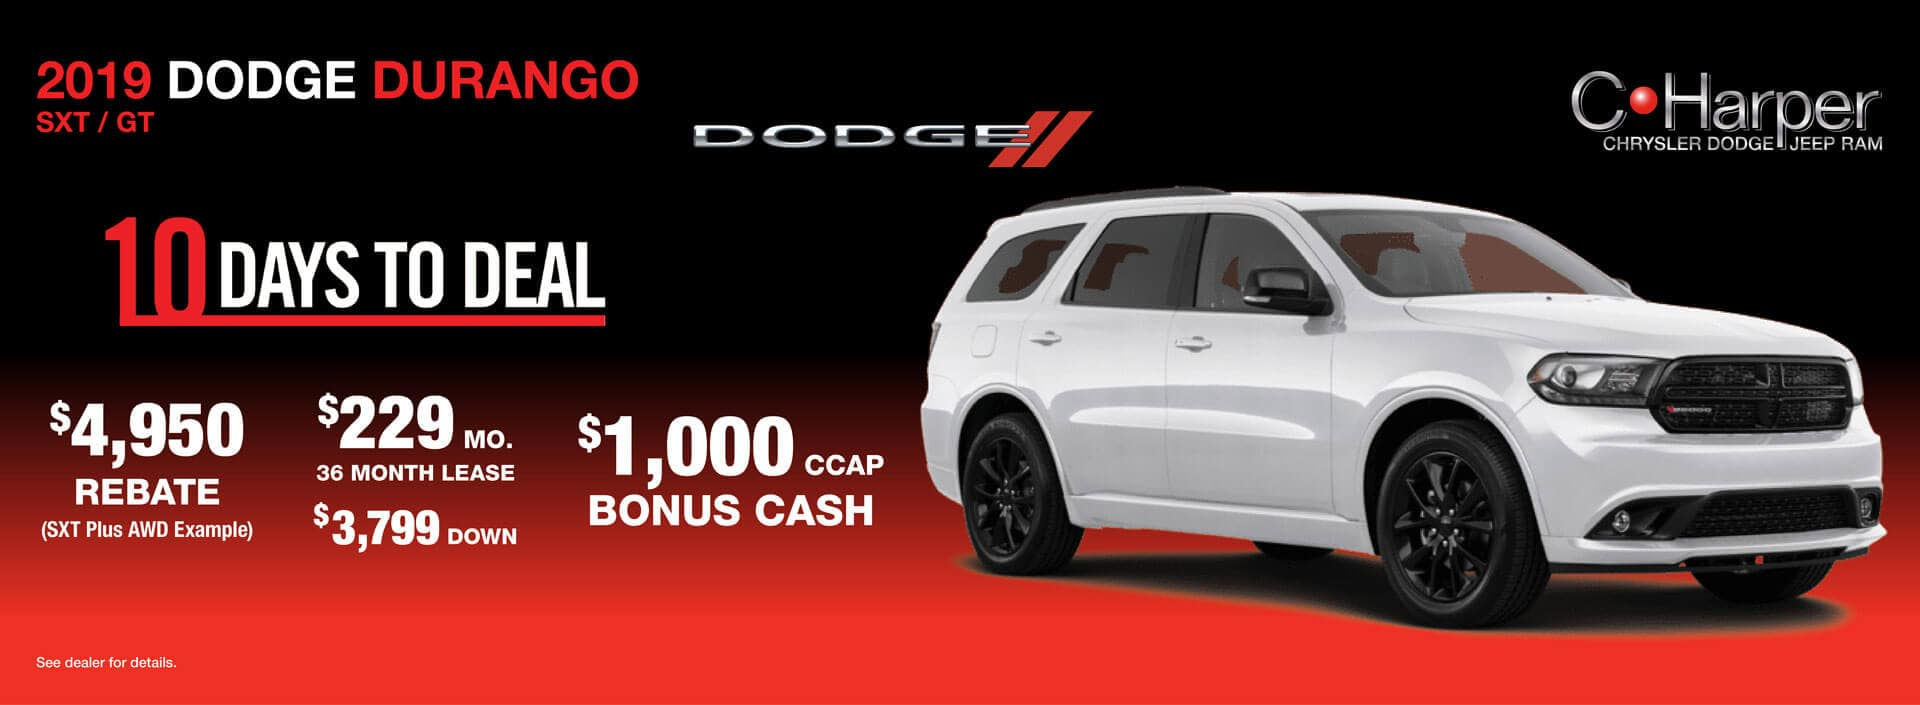 10 Days to Deal: Dodge Durango